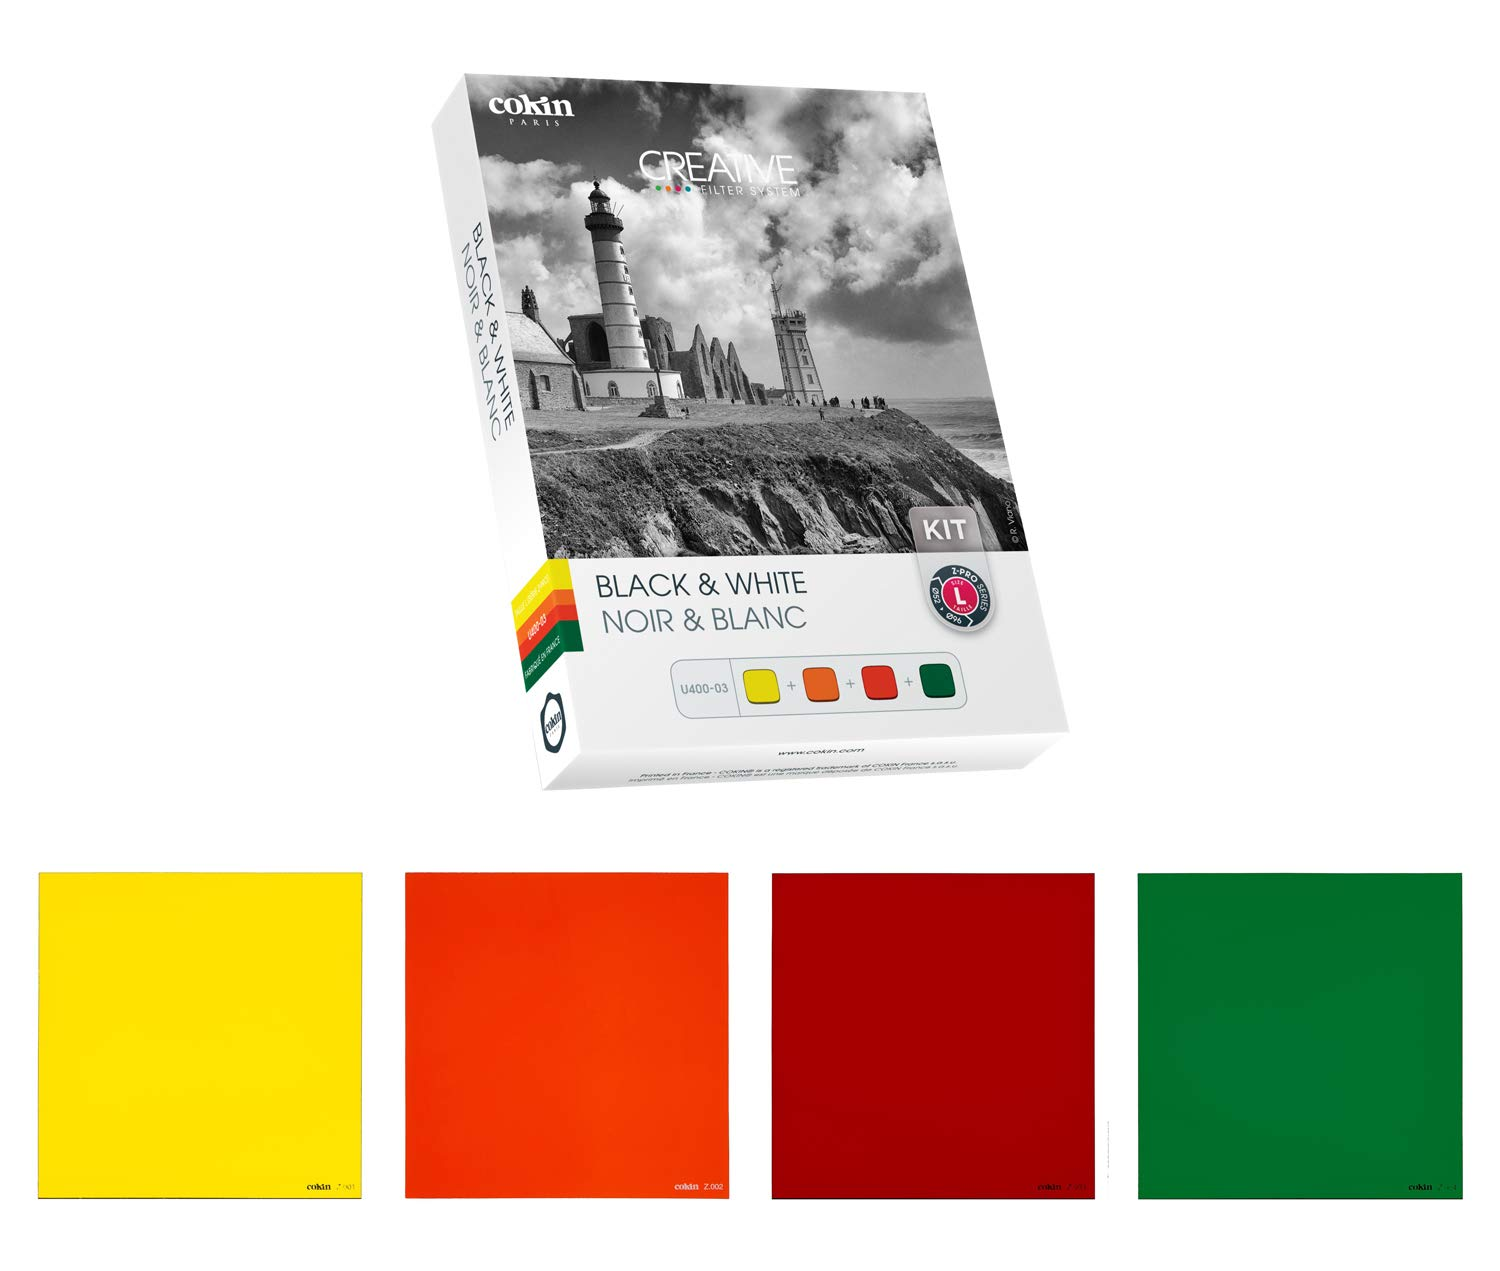 Cokin Square Filter U400-03 Black & White Creative Kit - Includes Yellow (001), Orange (002), Red (003), Green (004) for L (Z) Series Holder - 100mm X 100mm by Cokin